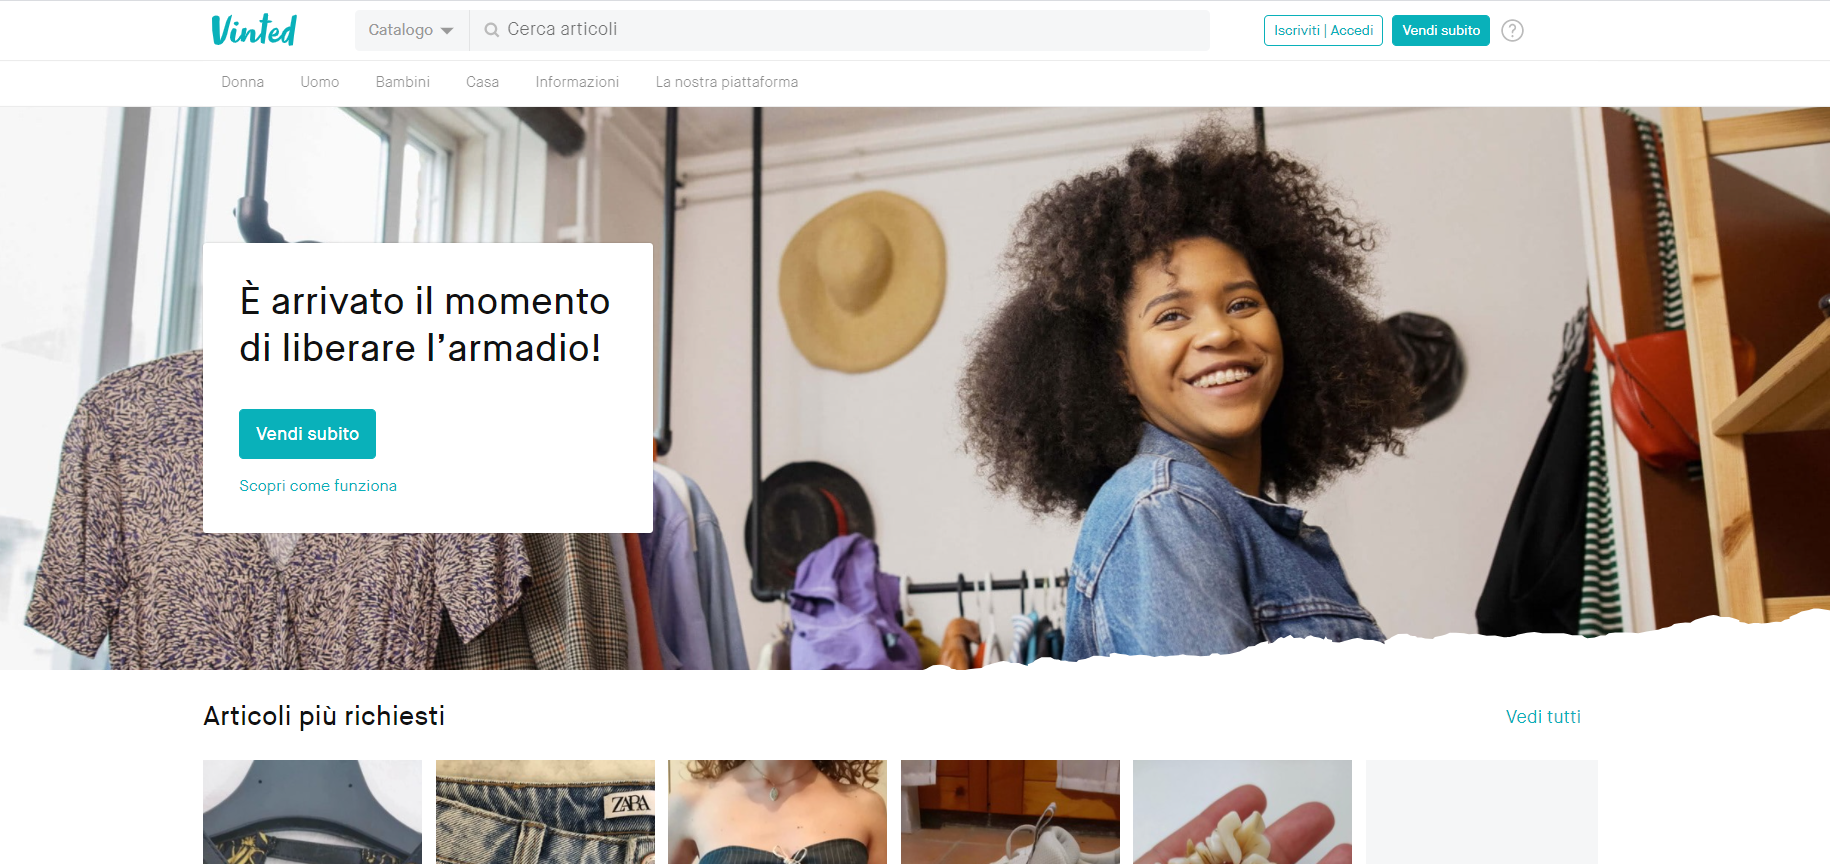 Vinted: a site for selling clothing online